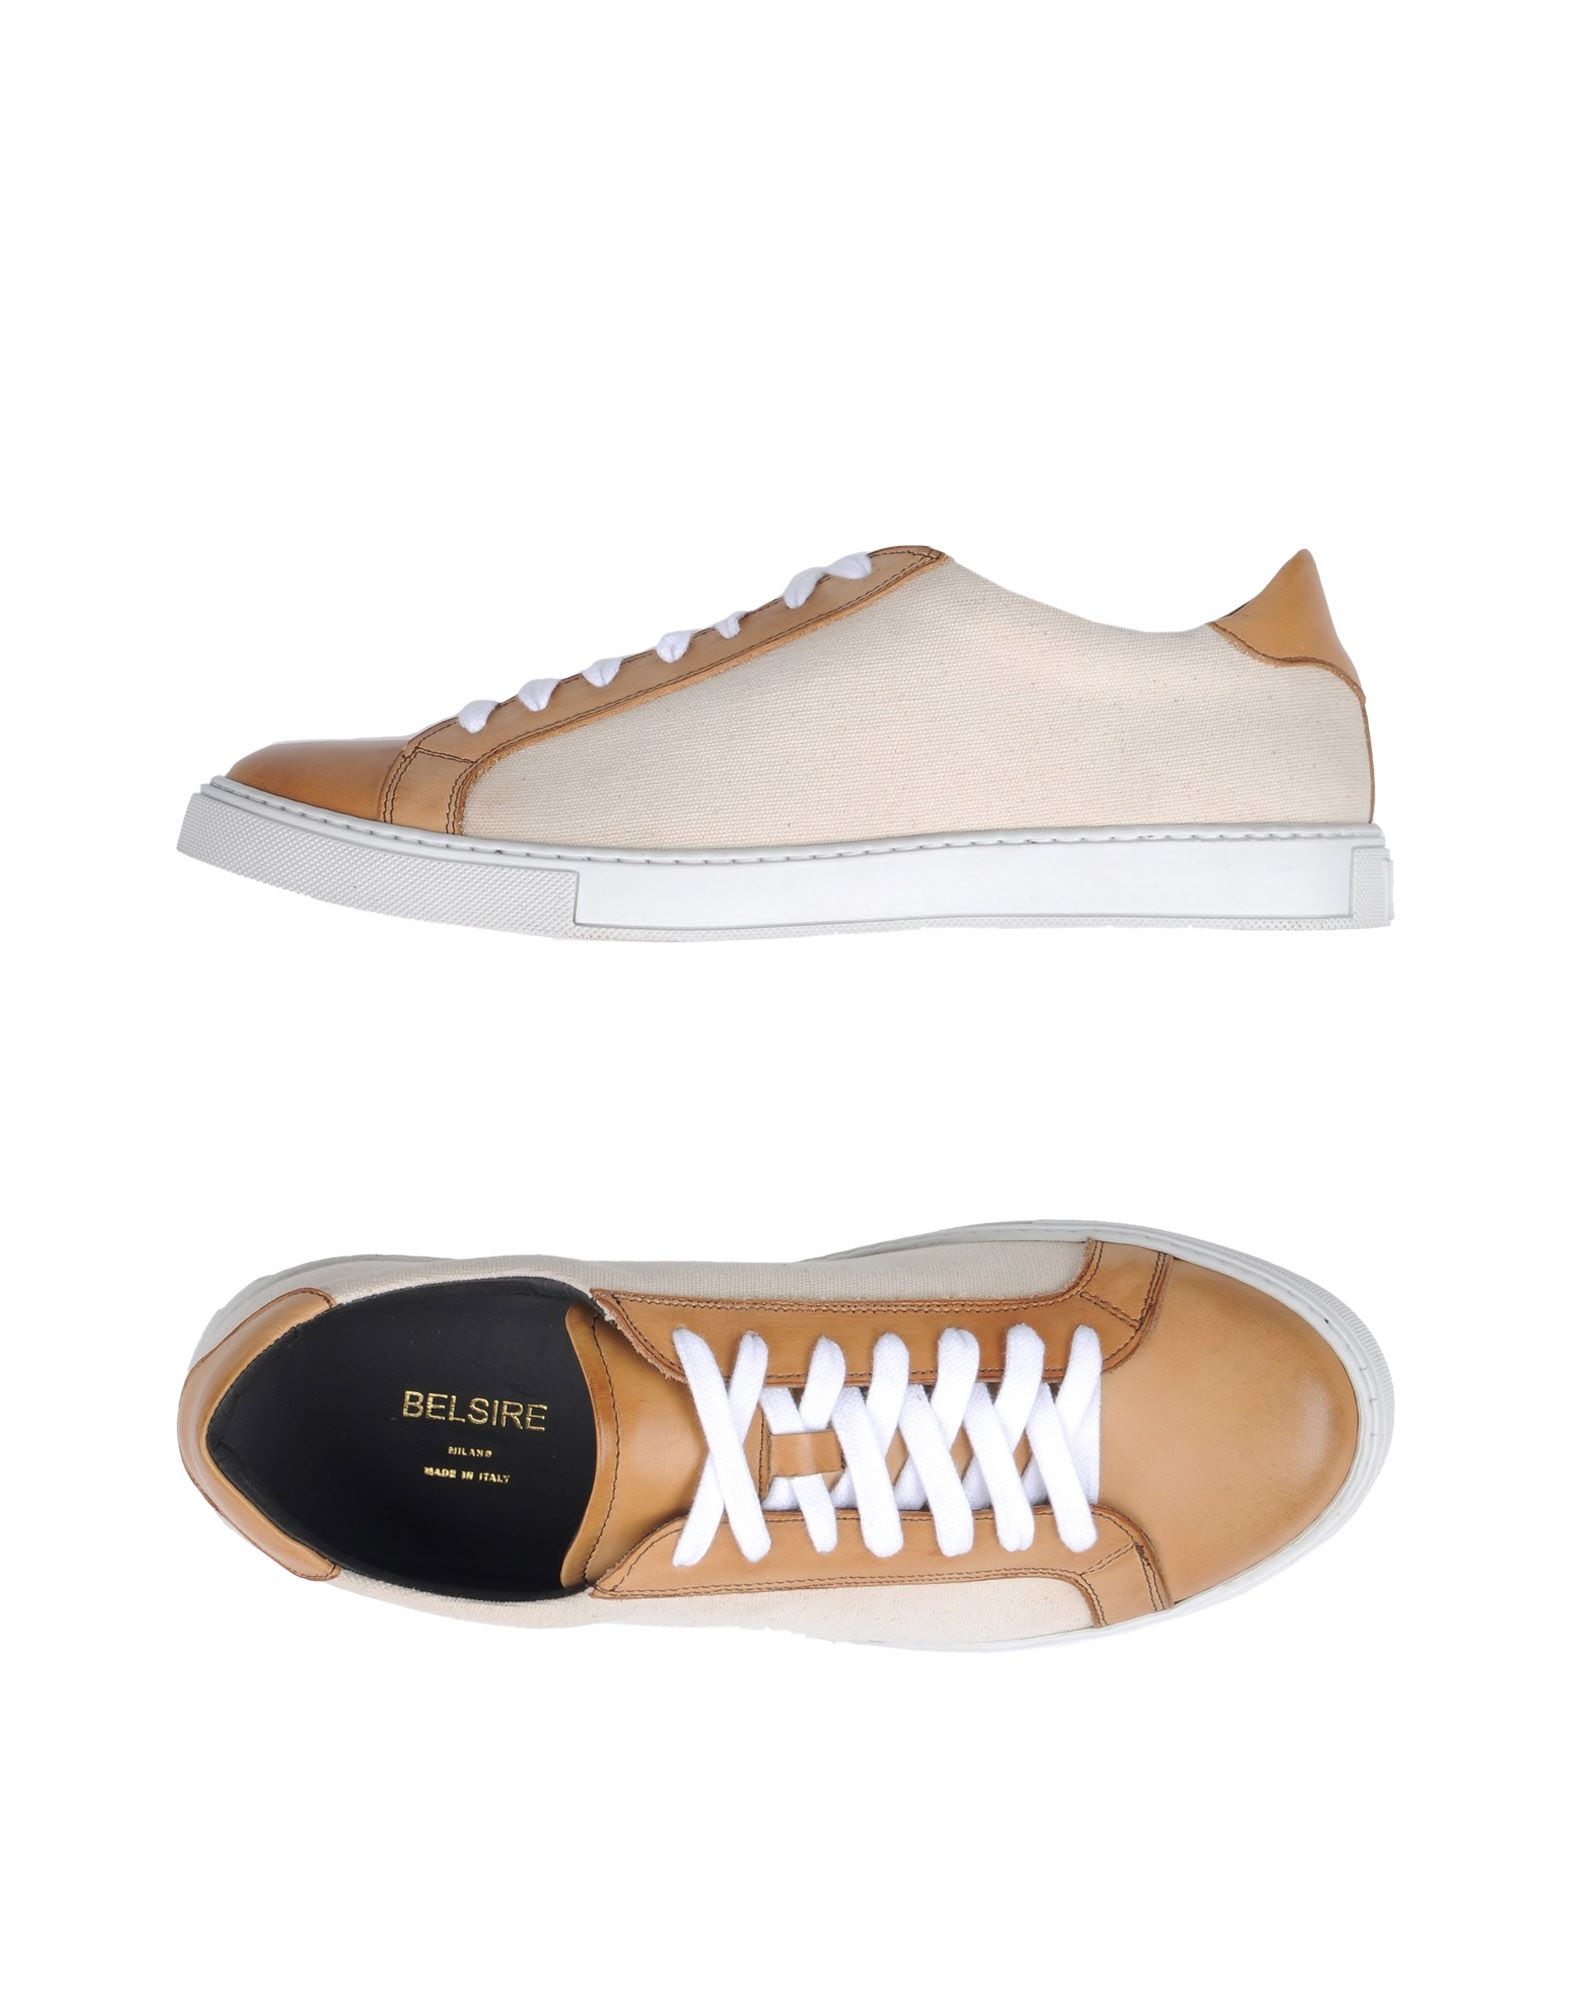 BELSIRE Sneakers in Beige